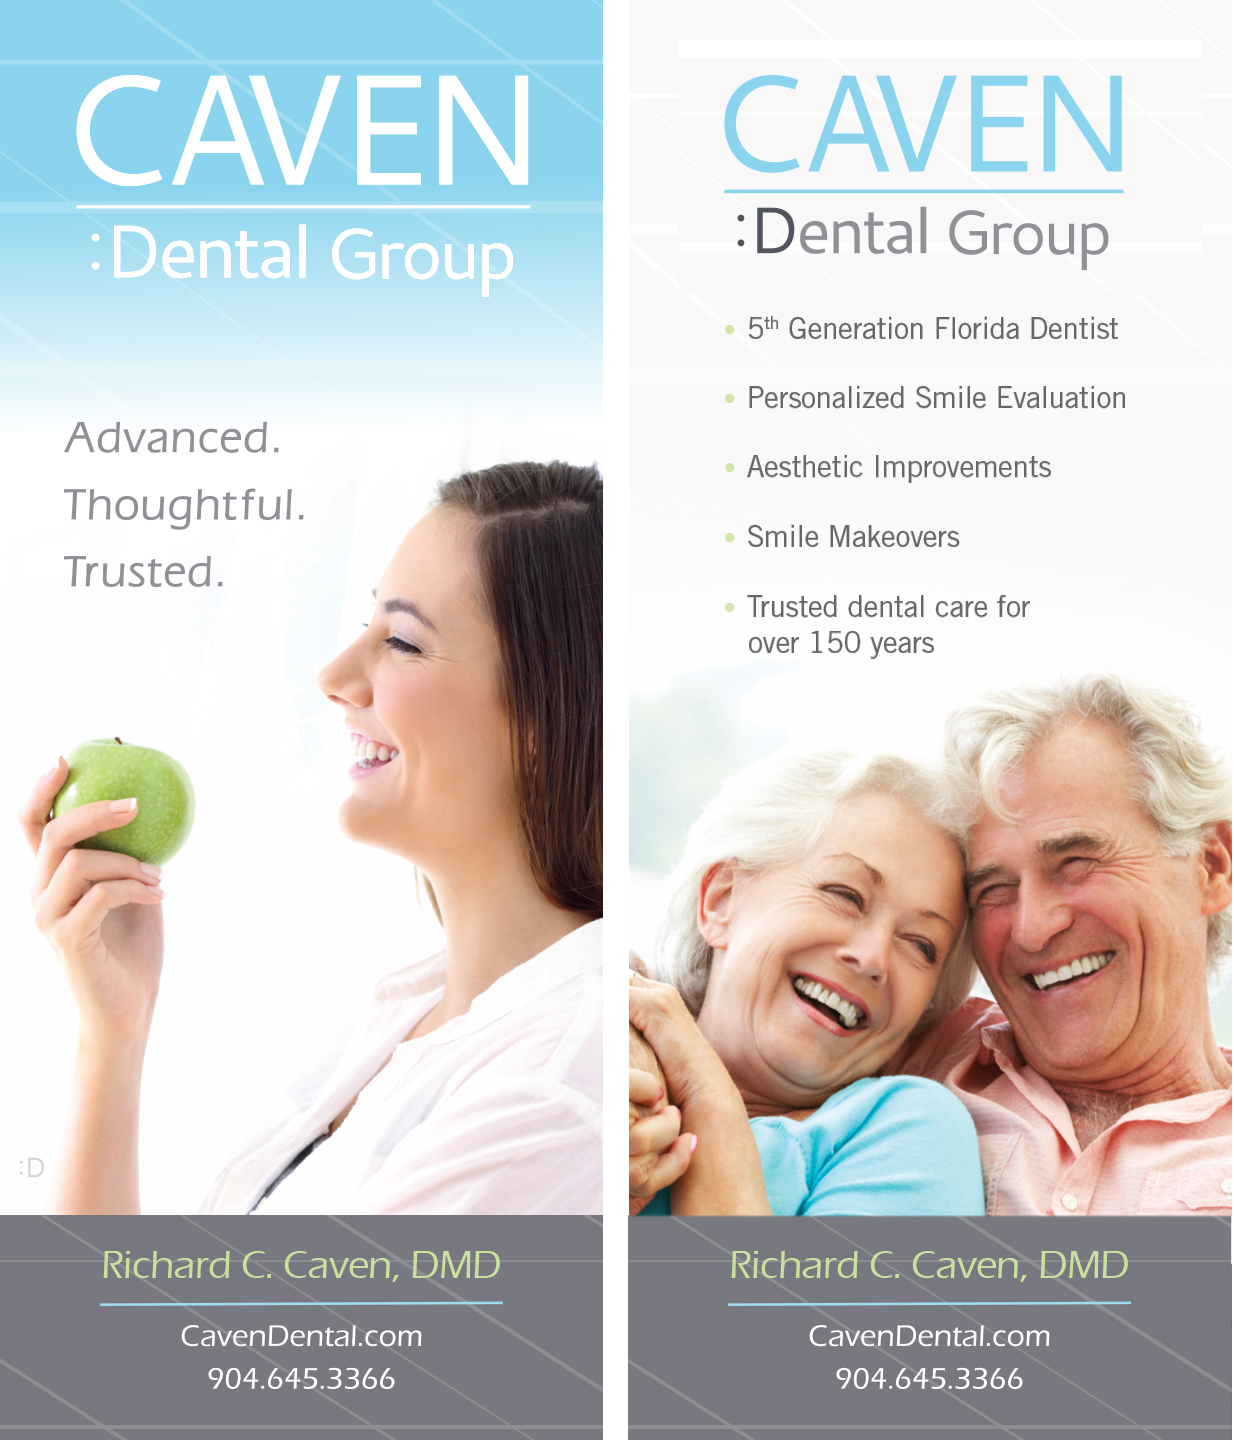 CAVEN tradeshow booths